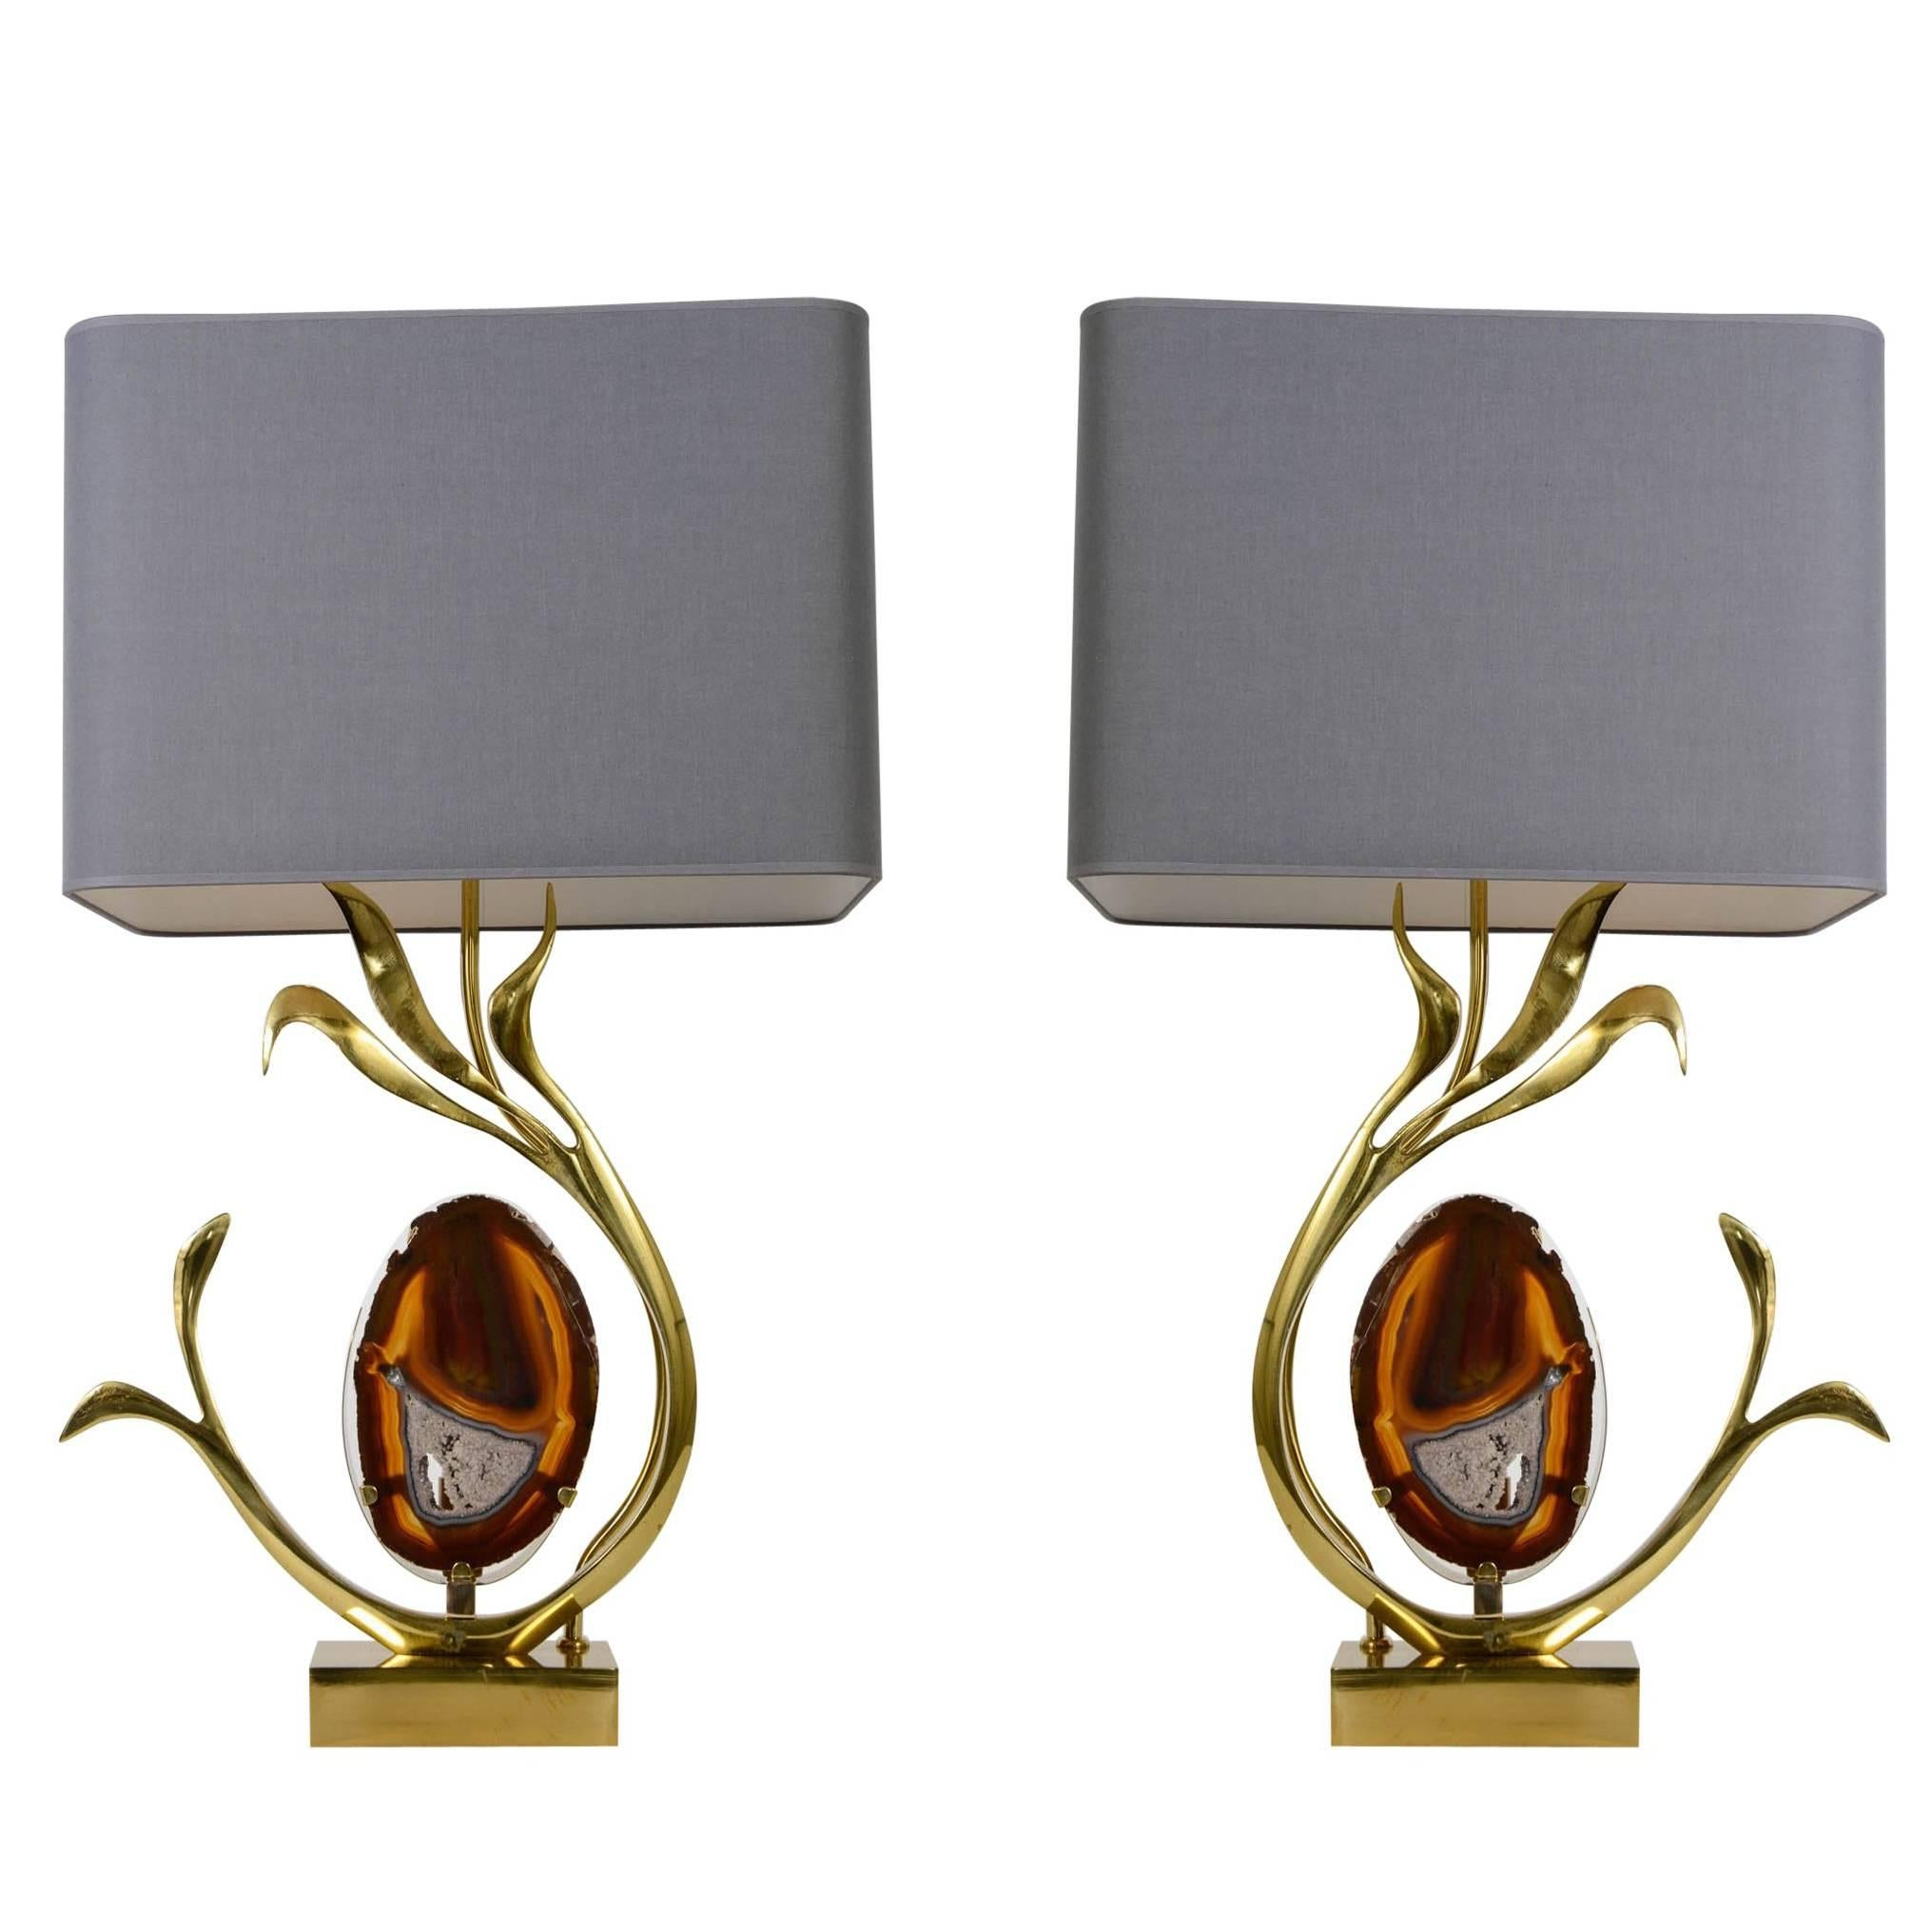 Pair of Lamps Designed by Willy Daro